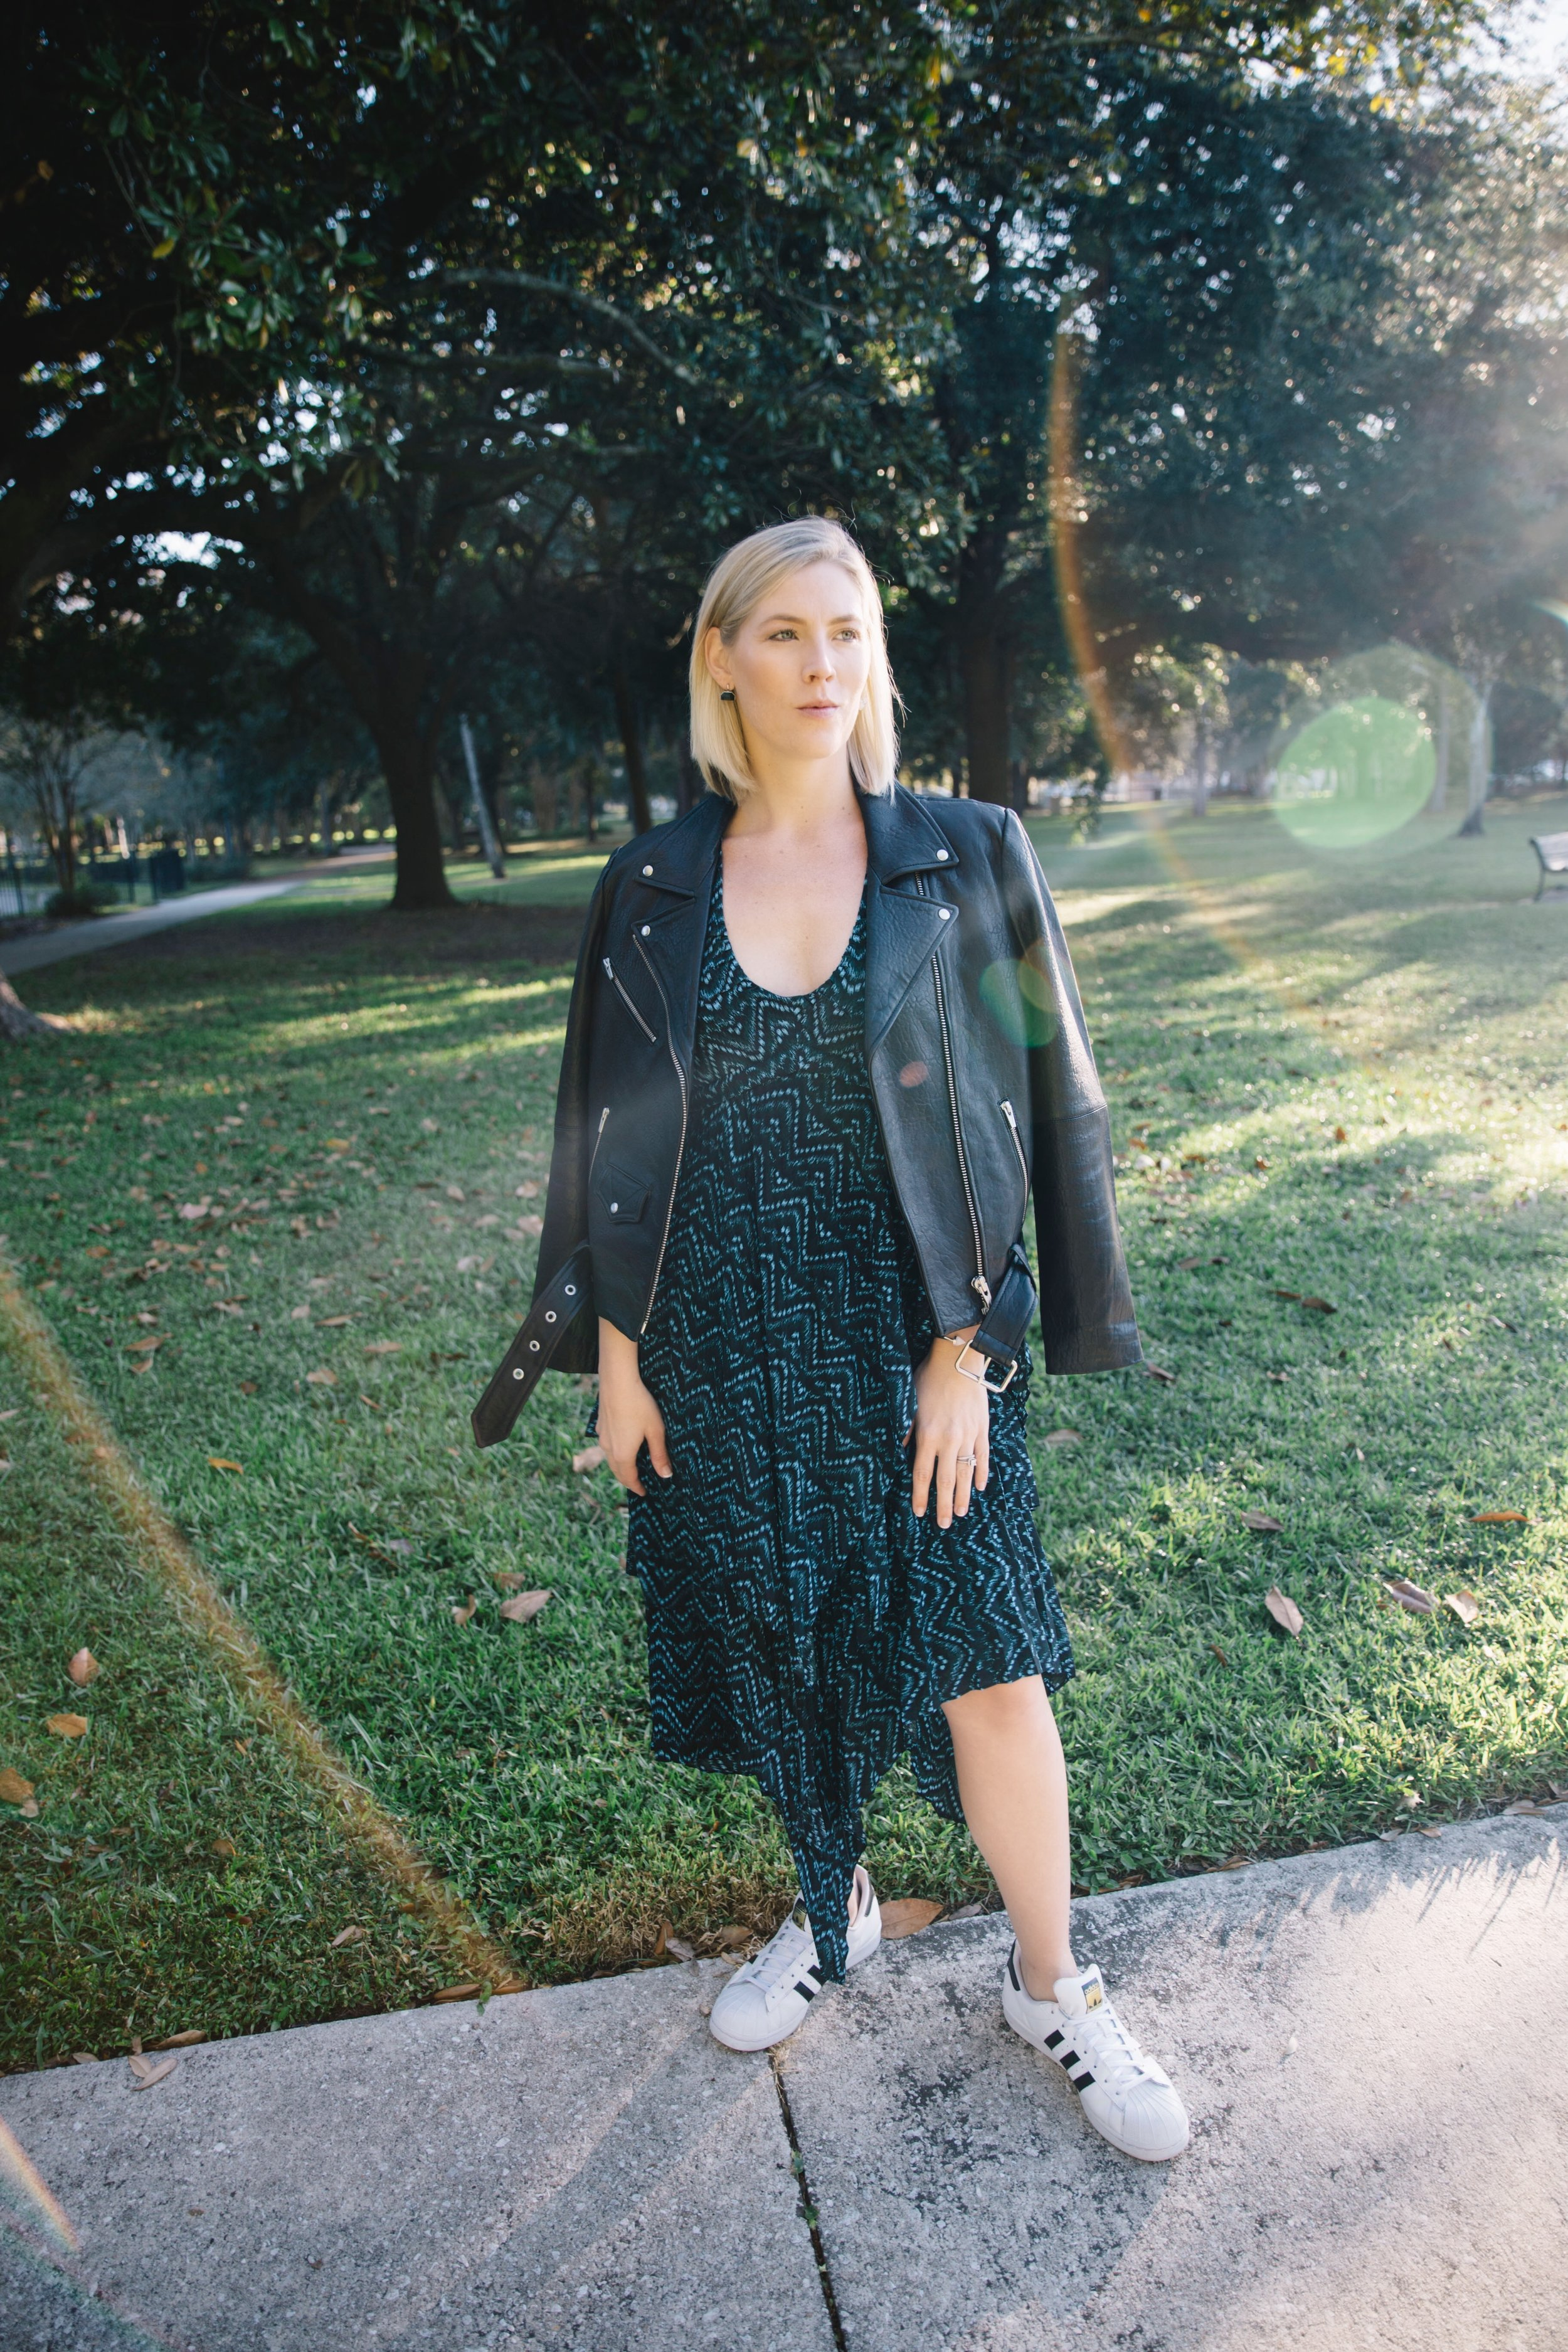 ALC Dress and Veda Jacket from Rent the Runway for Transitional Season Style by Stephanie Mack The Borrowed Babes Fashion Blogger